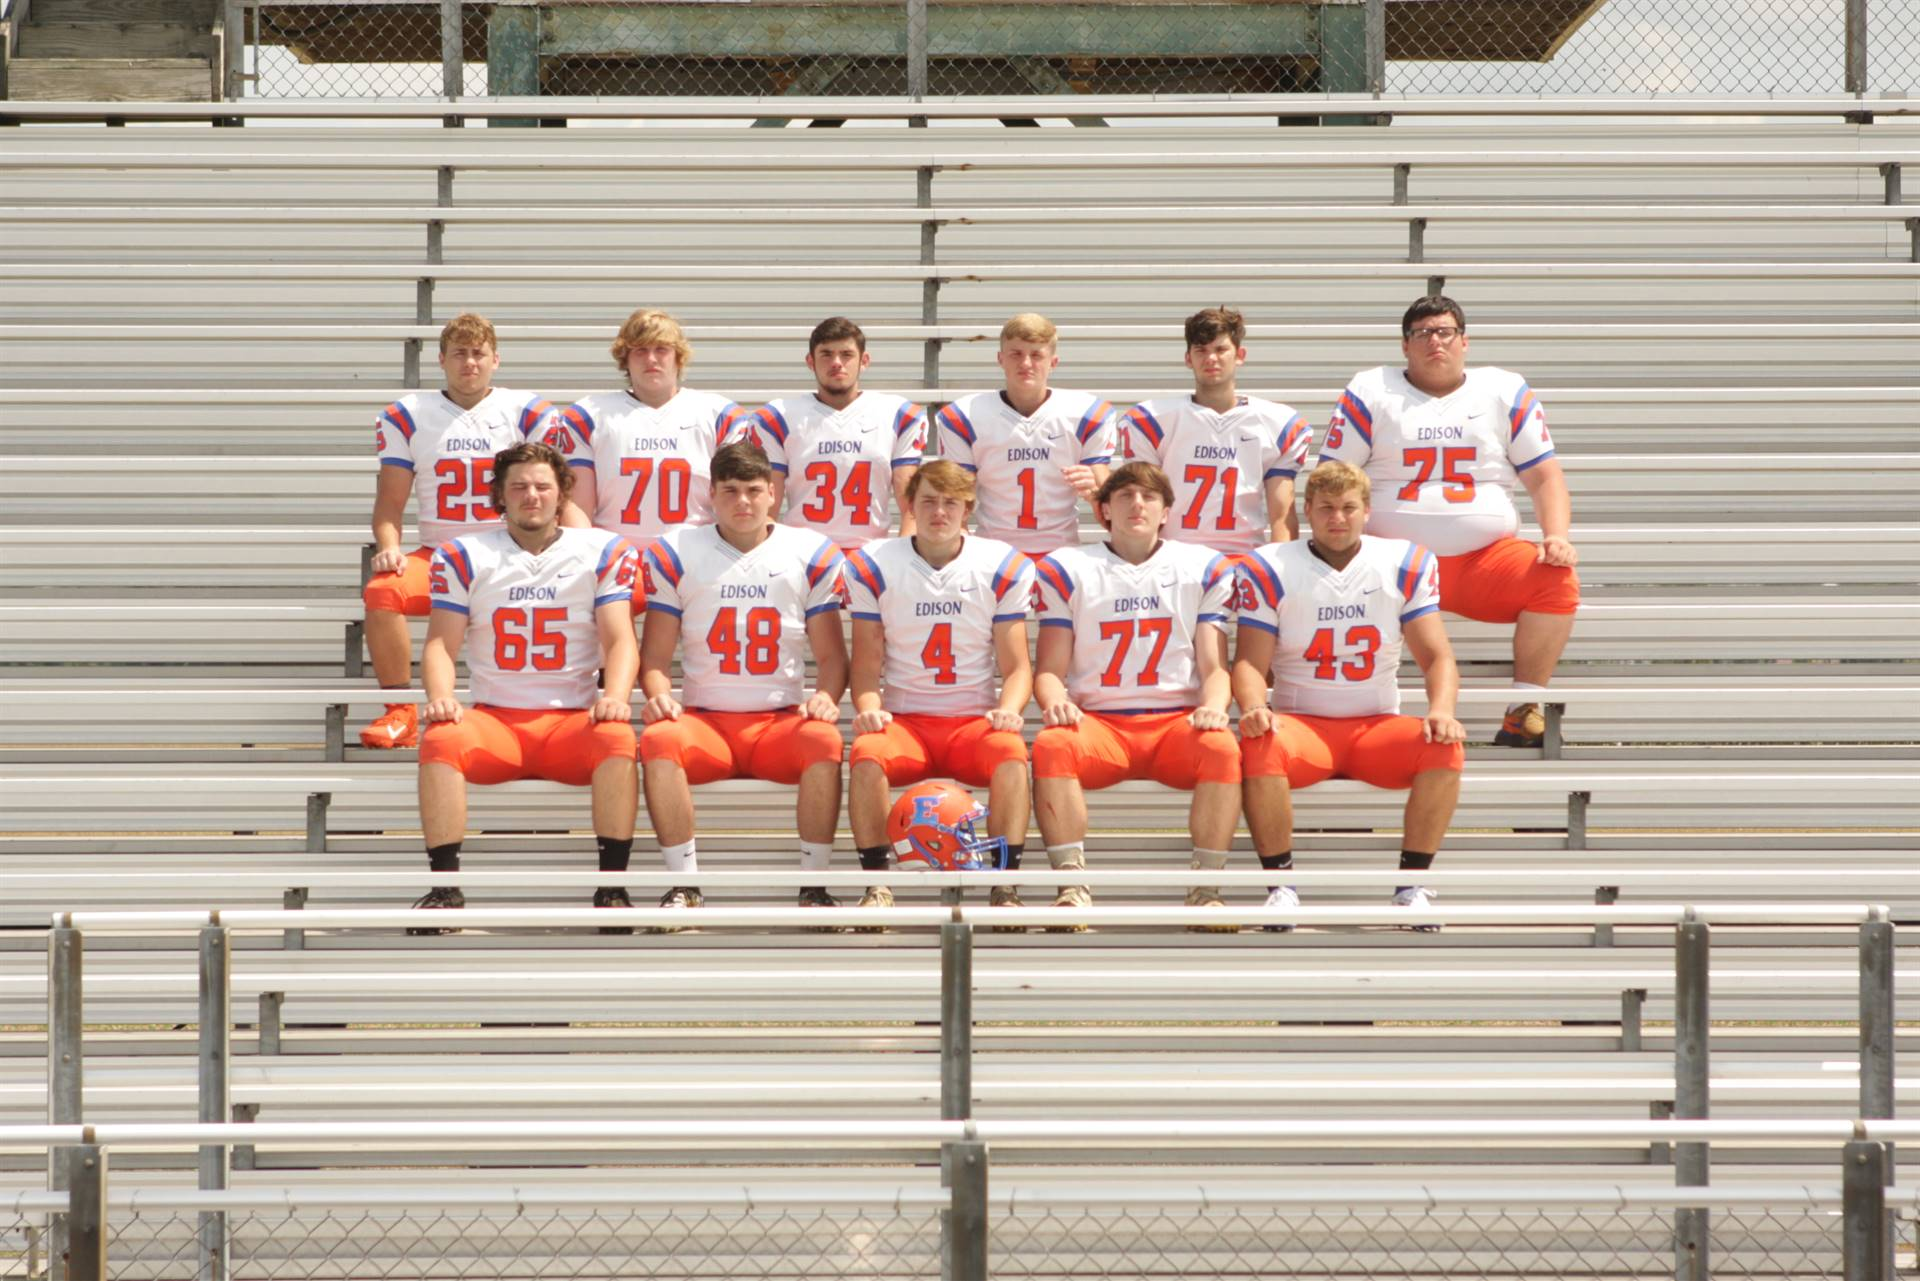 2019 Senior Football Players